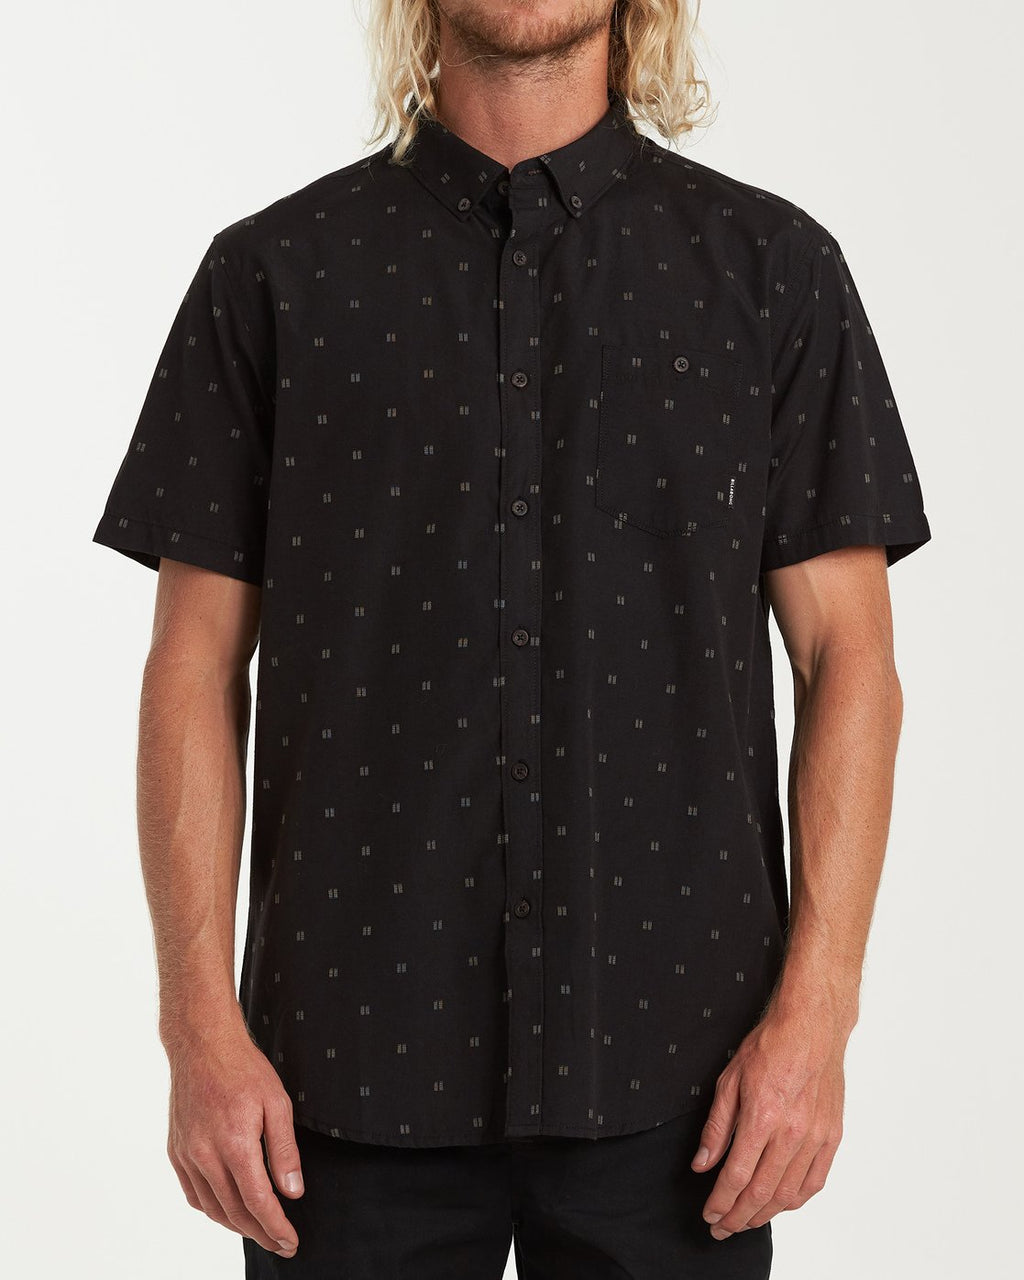 Billabong - All Day Jacquard SS, Black